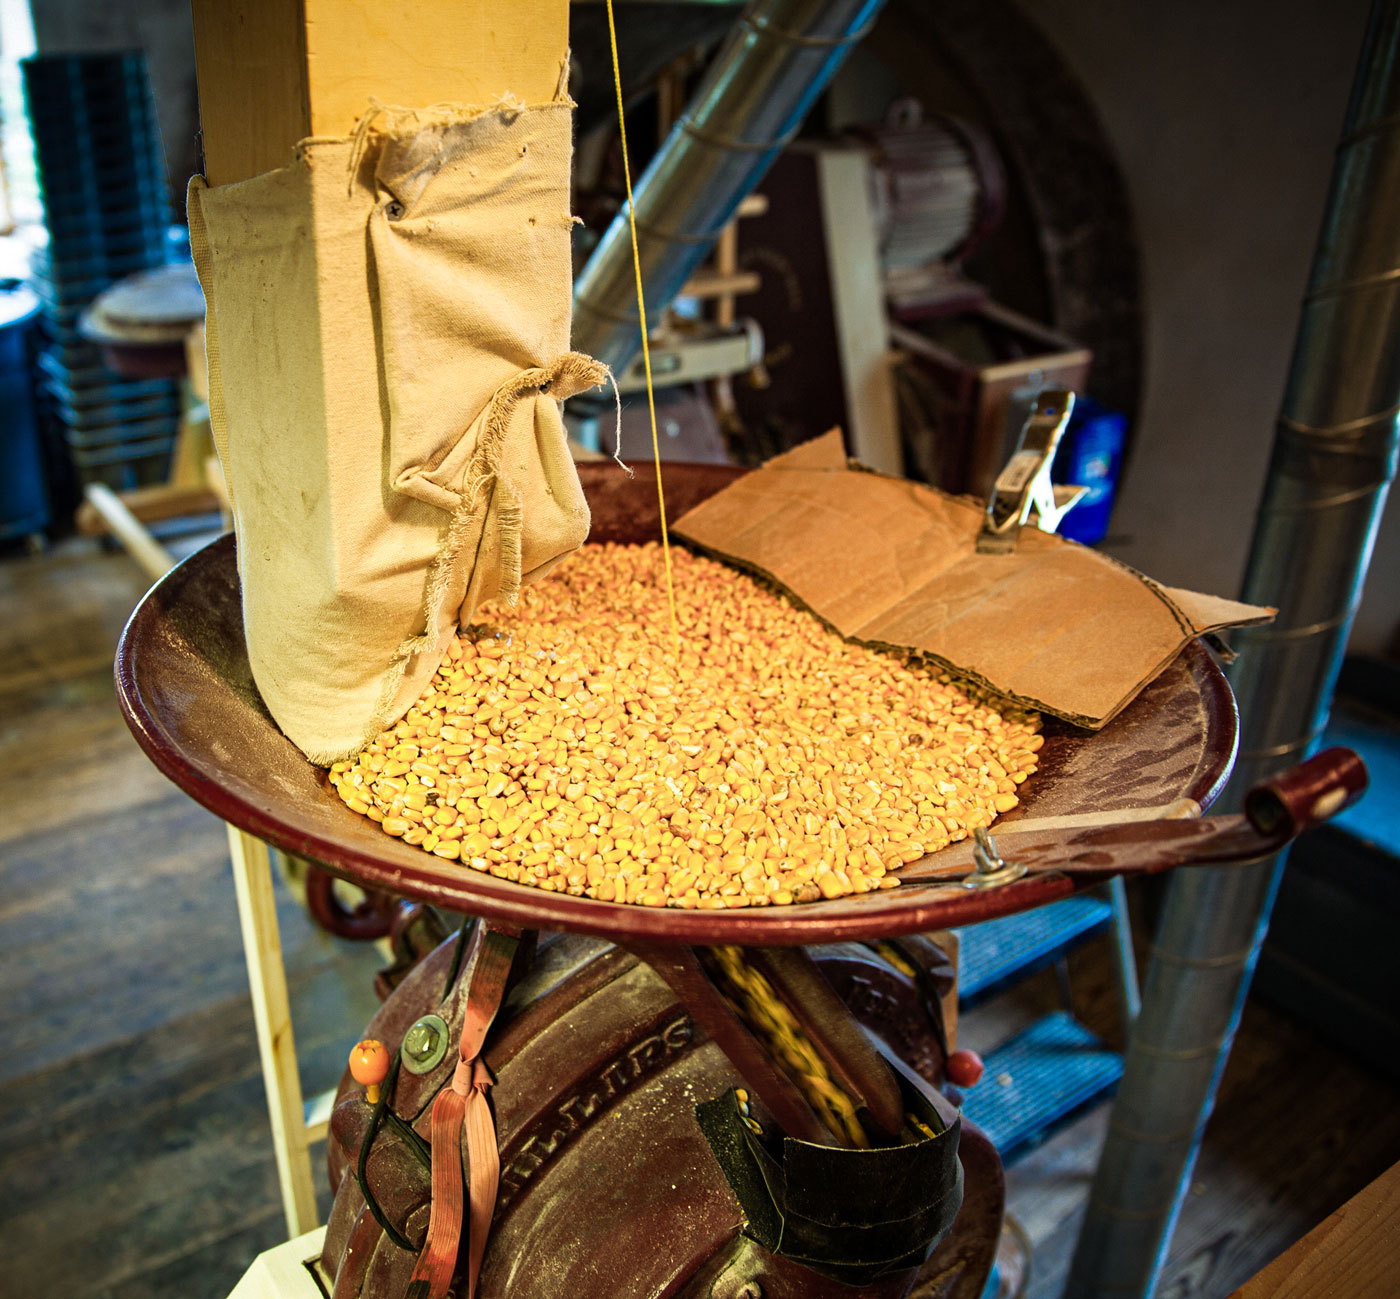 A bag of grain poured into a metal grain mill grinder.